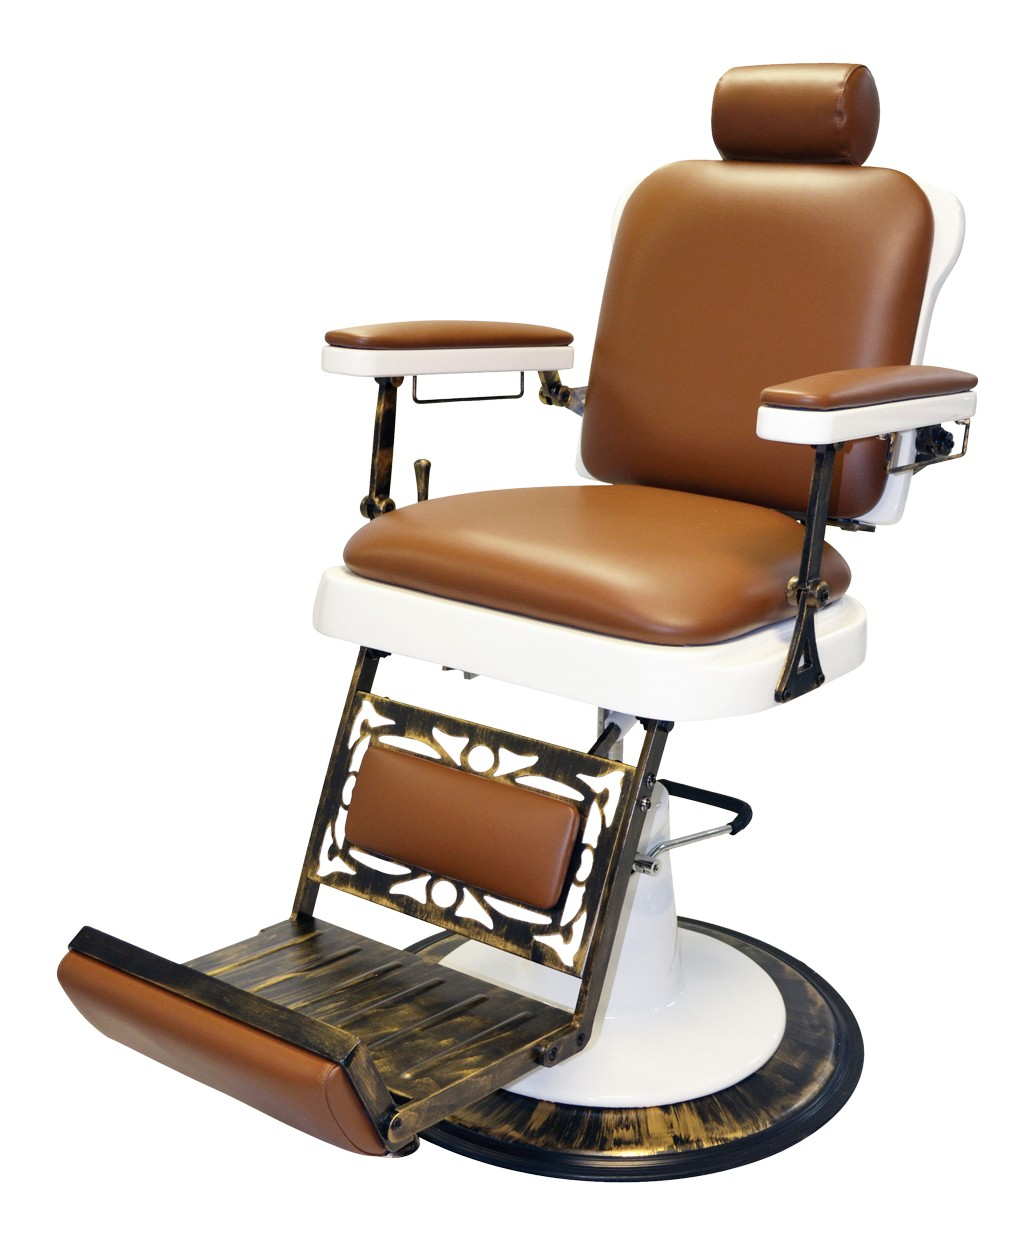 Old Barber Chairs Classic And Antique Barber Chair Pibbs 662 King Barber Chair